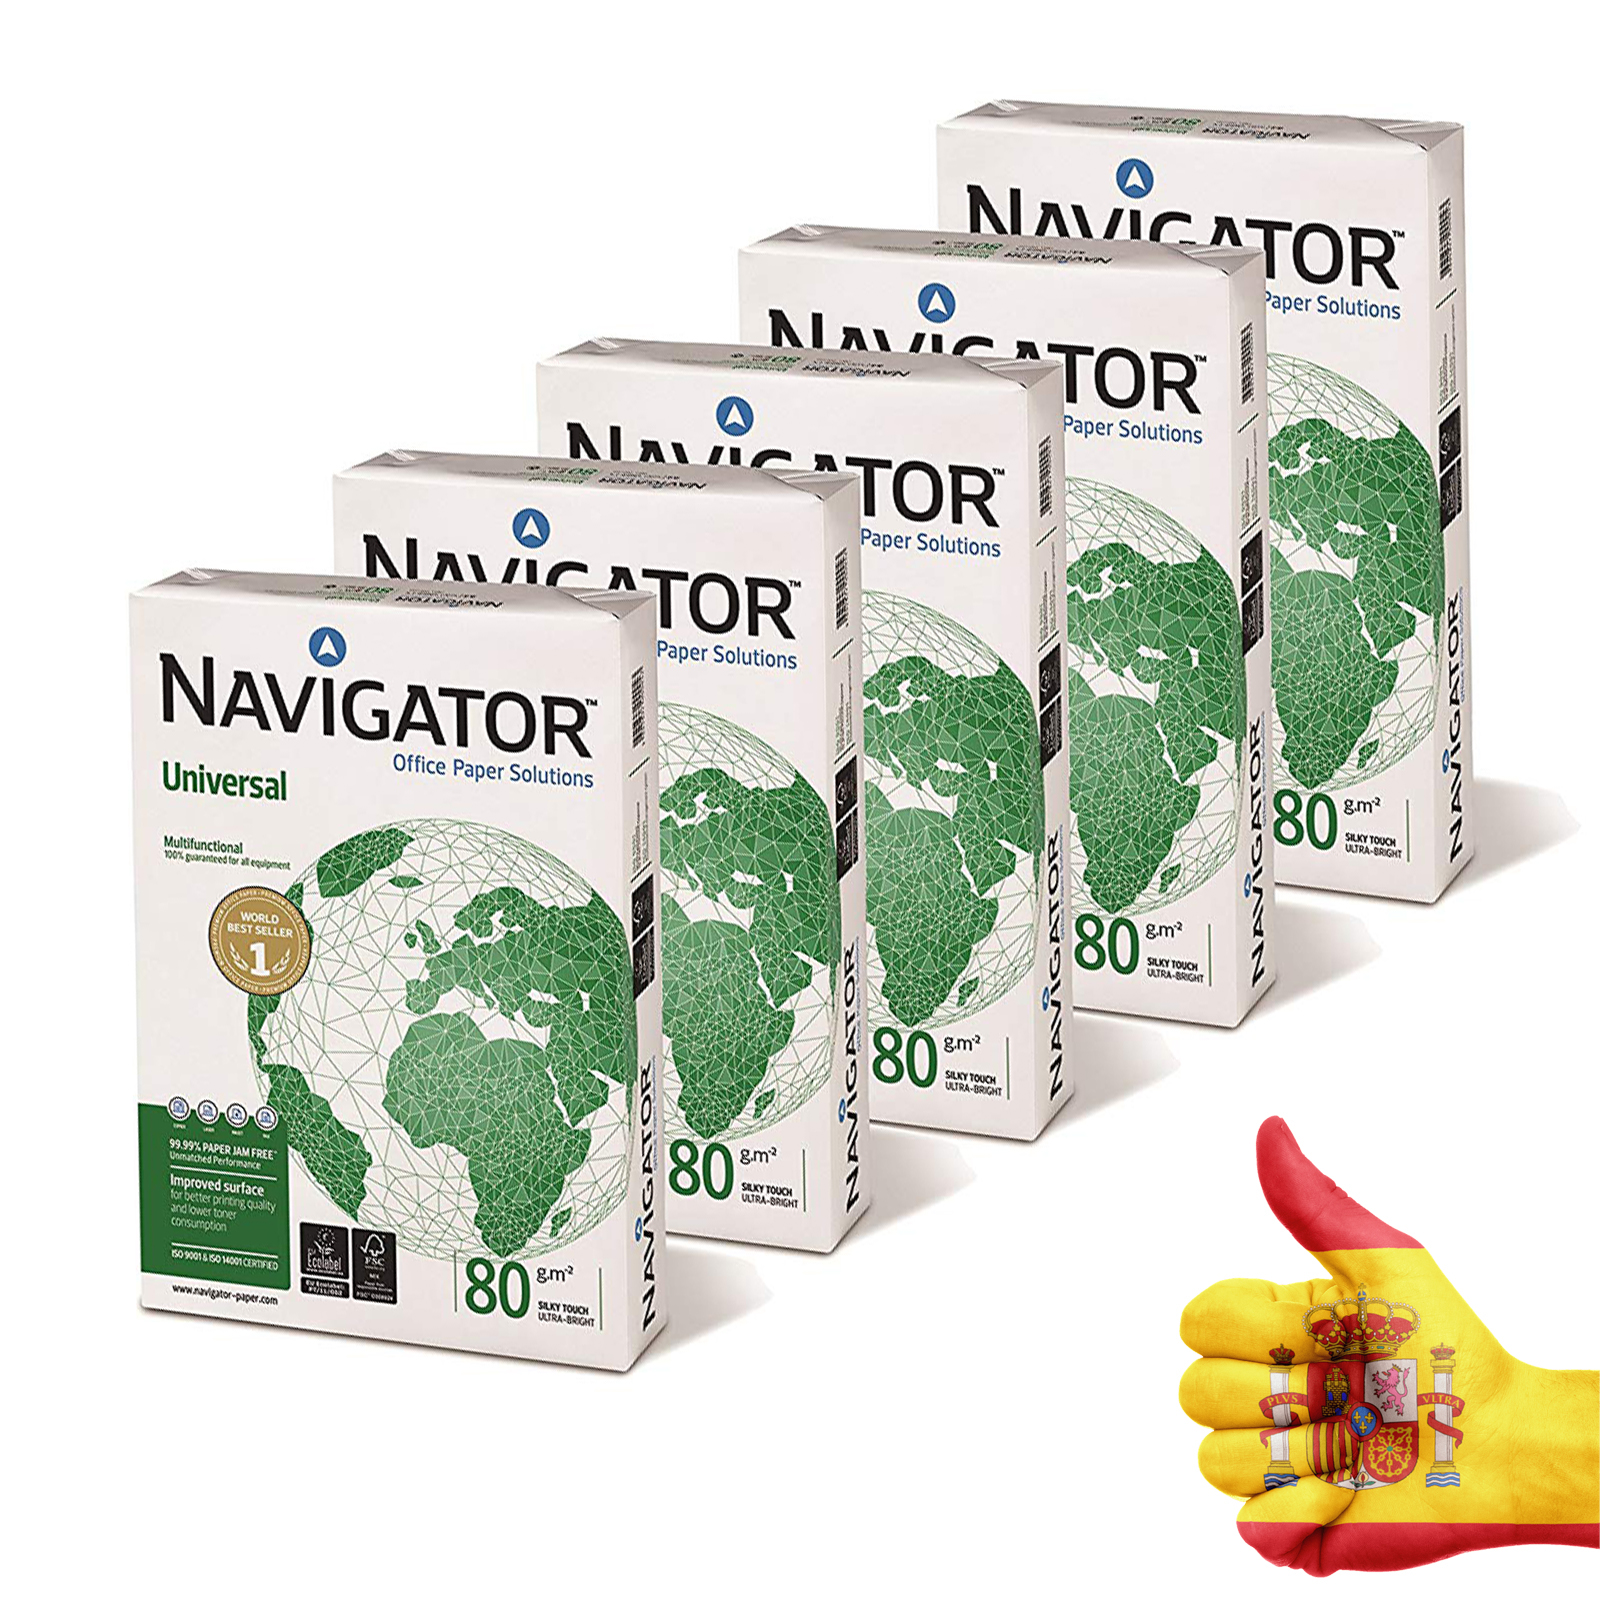 Navigator Universal-Paper's Printout 2500 Sheets (A4, 5x500 Sheets, 80g/m2) COPY MACHINE MULTI PURPOSE INK-JET AND LASER-PACKAGE